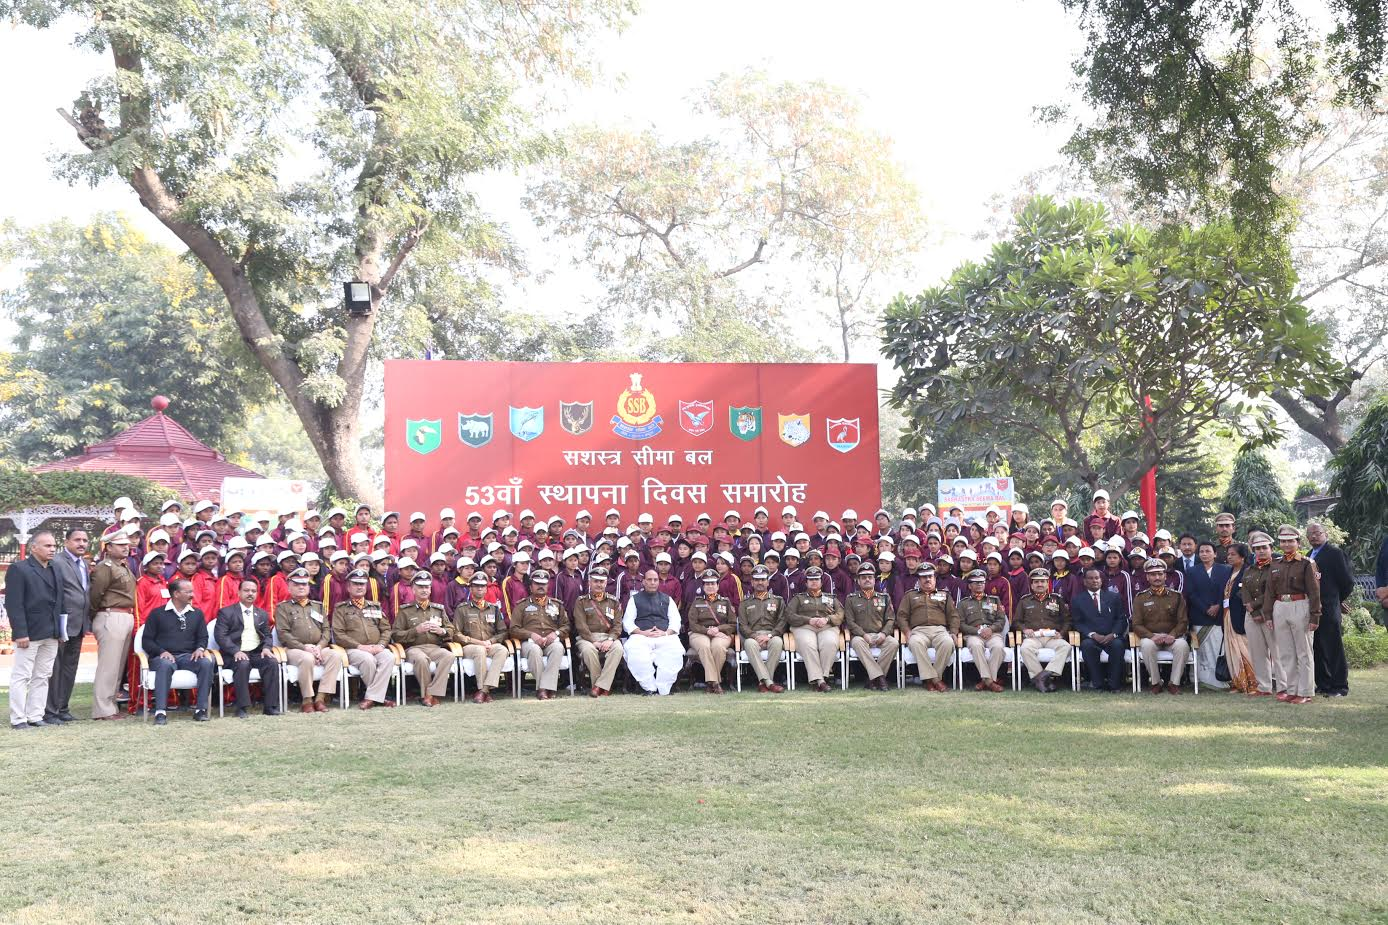 shri-rajnath-singh-at-53rd-ssb-foundation-day-1